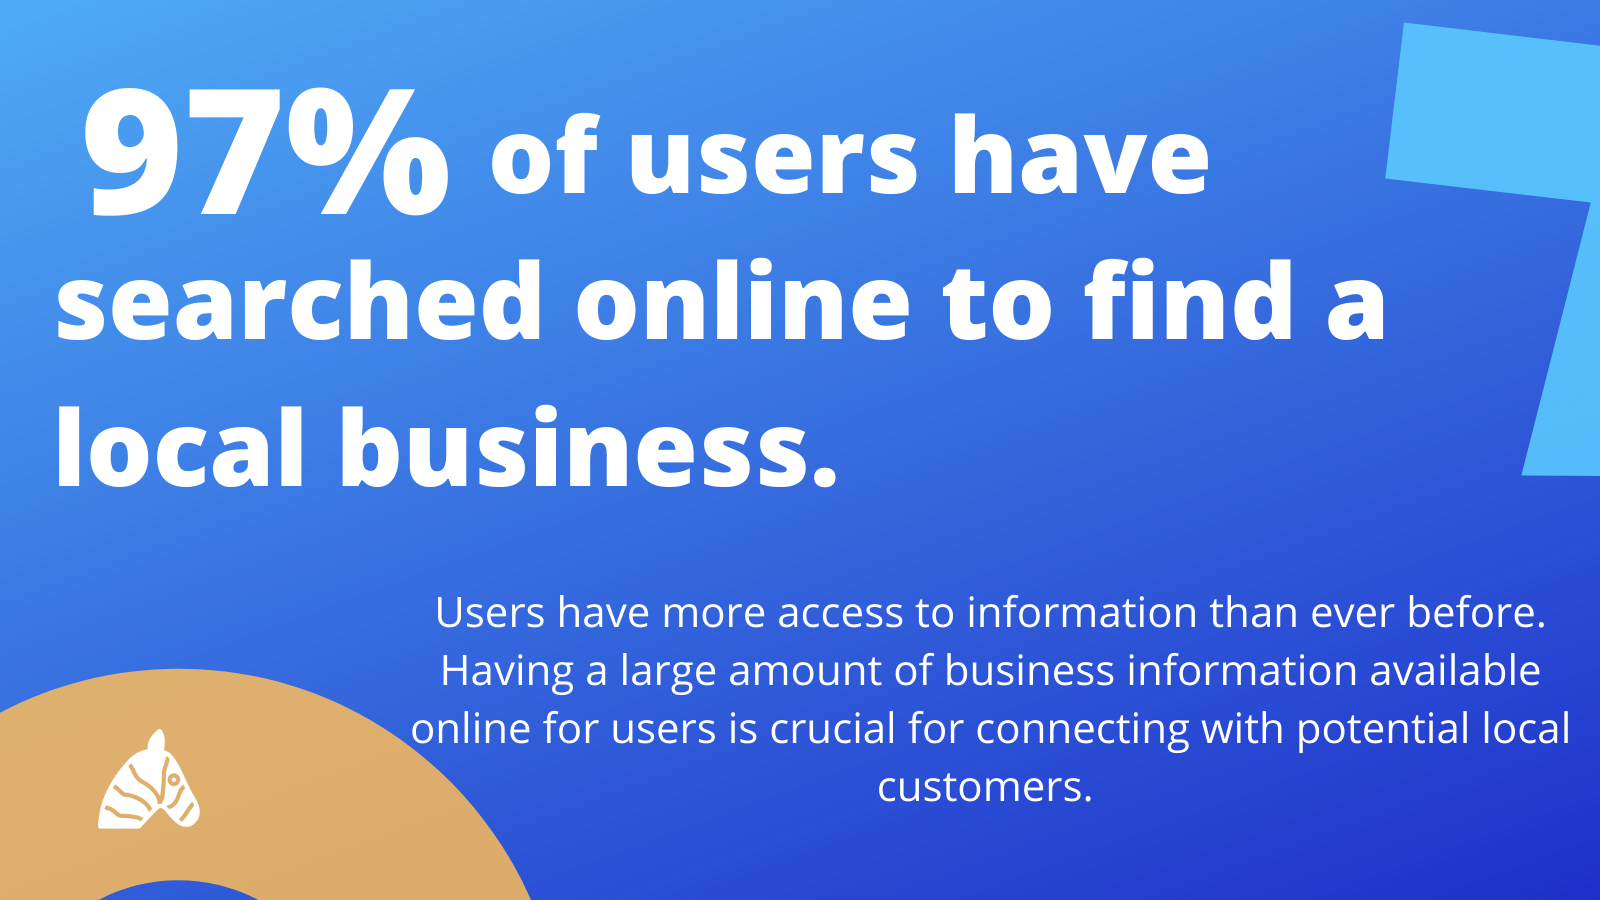 Statistic for local search and local businesses